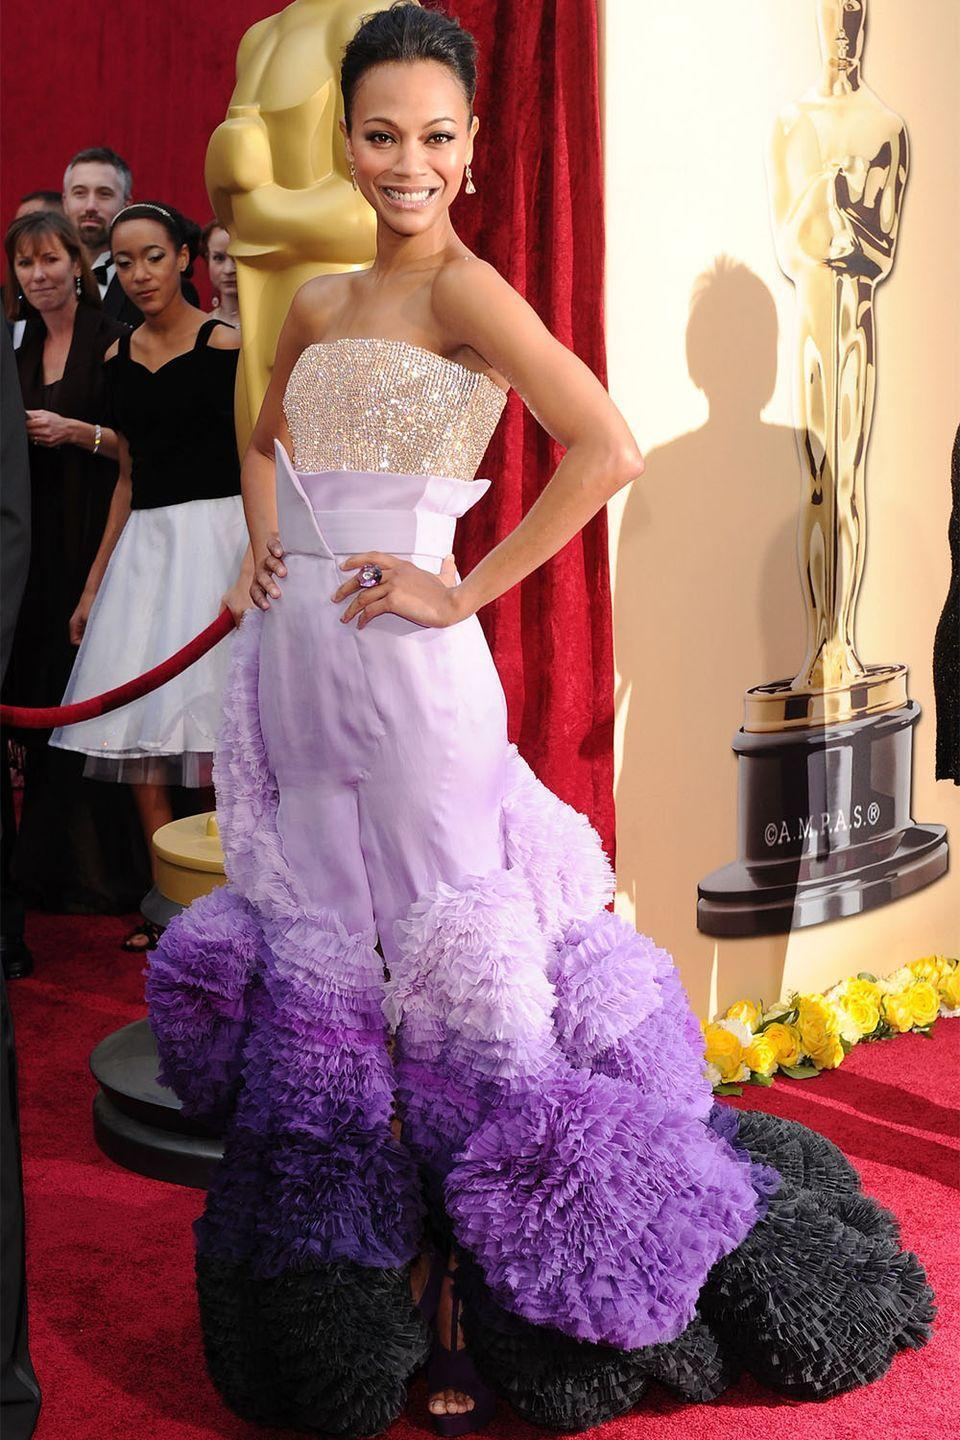 <p>More was more for Zoe Saldana at the 2010 Oscars where she wore this Givenchy Haute Couture with crystal embellished bodice with an ombre tulle ruffled skirt. </p>